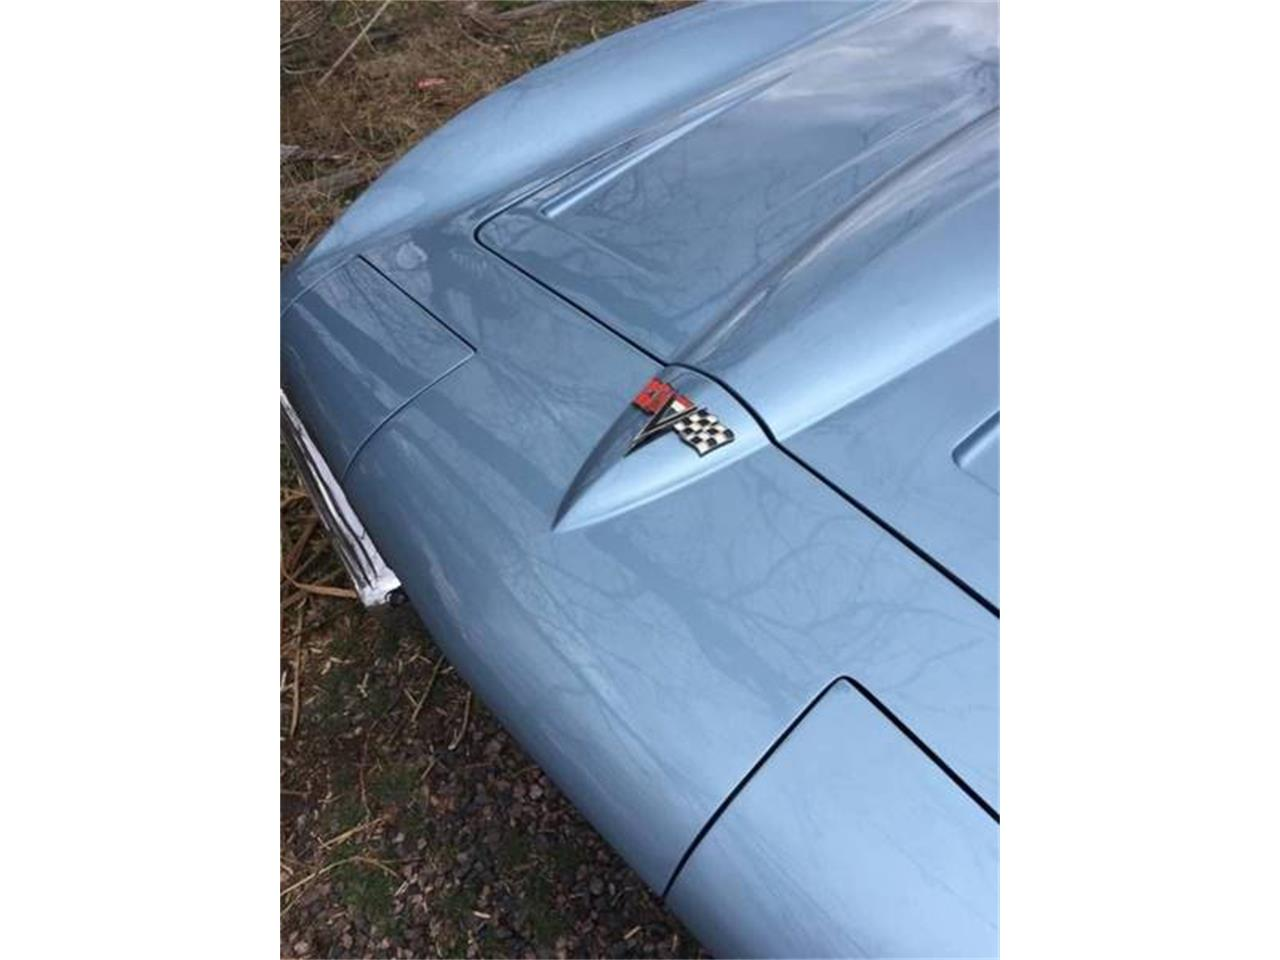 1964 Chevrolet Corvette for sale in Long Island, NY – photo 19